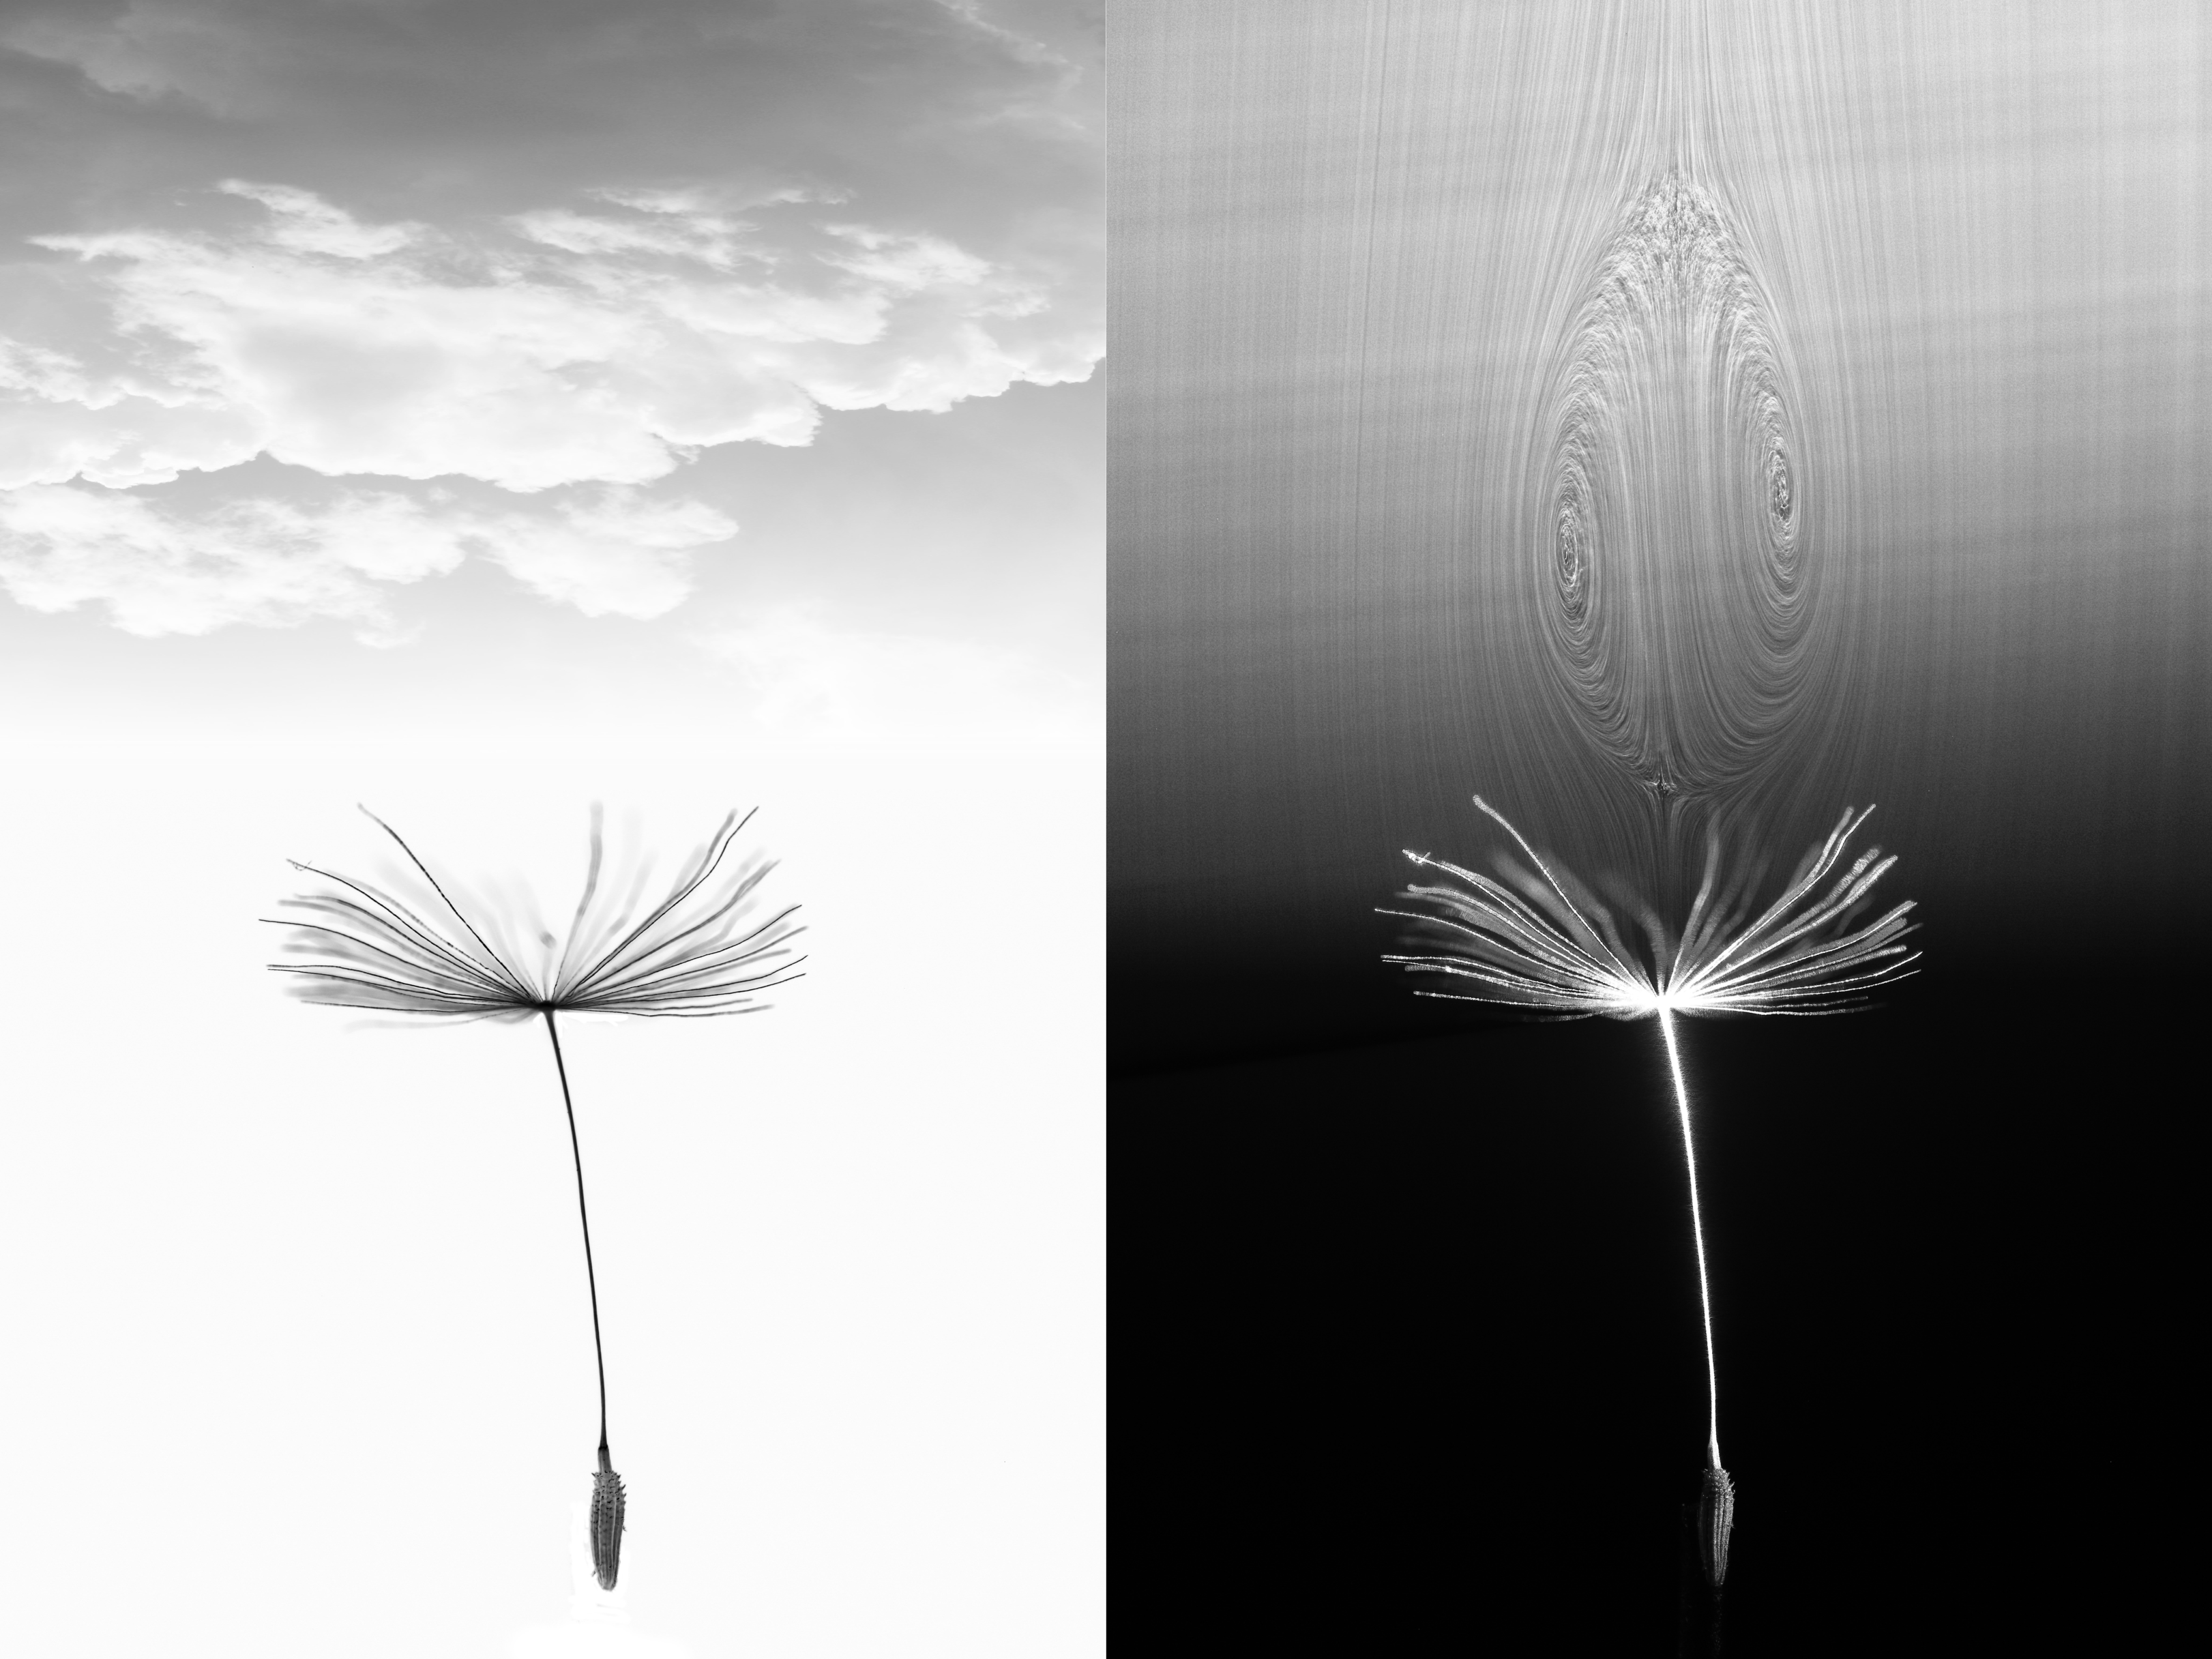 (Left) A dandelion seed in a wind tunnel, with added clouds for effect. (Right) The same dandelion with the flow around it visualised using a laser sheet (contrast enhanced), showing the formation of a drag-enhancing vortex unlike any other observed before in nature, which we term a 'halo' vortex.